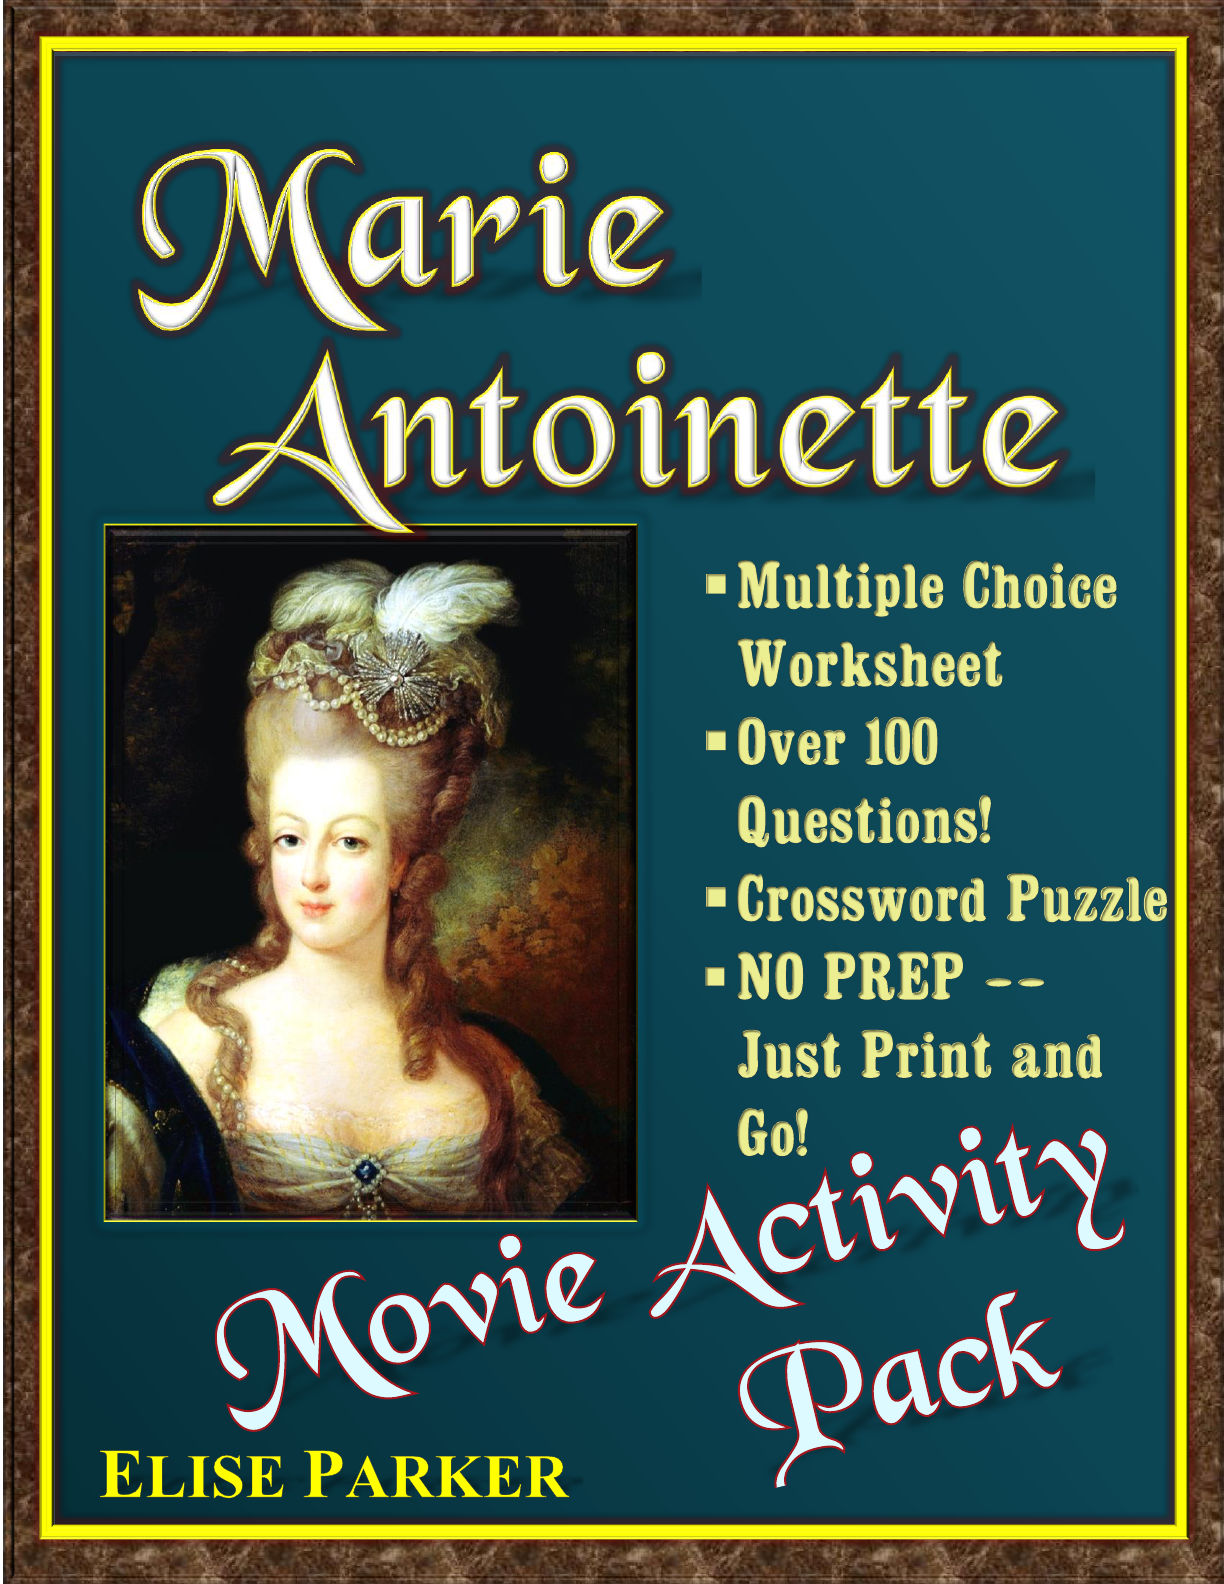 Marie antoinette movie worksheets and activity pack worksheets activities fandeluxe Choice Image